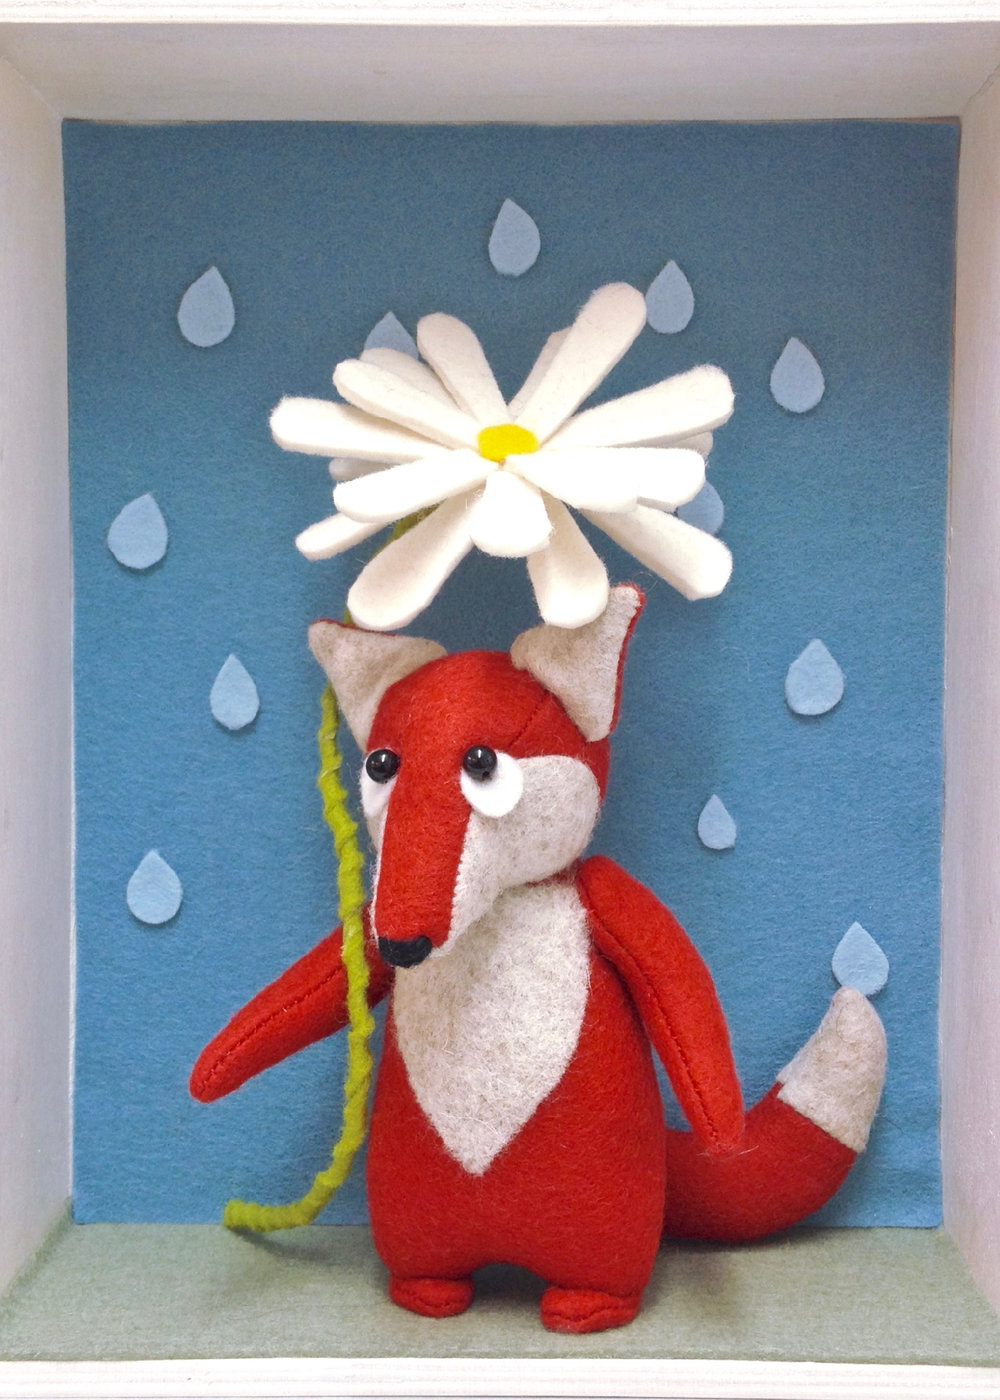 Bilberry Woods fox with a felt daisy umbrella by Laura Mirjami